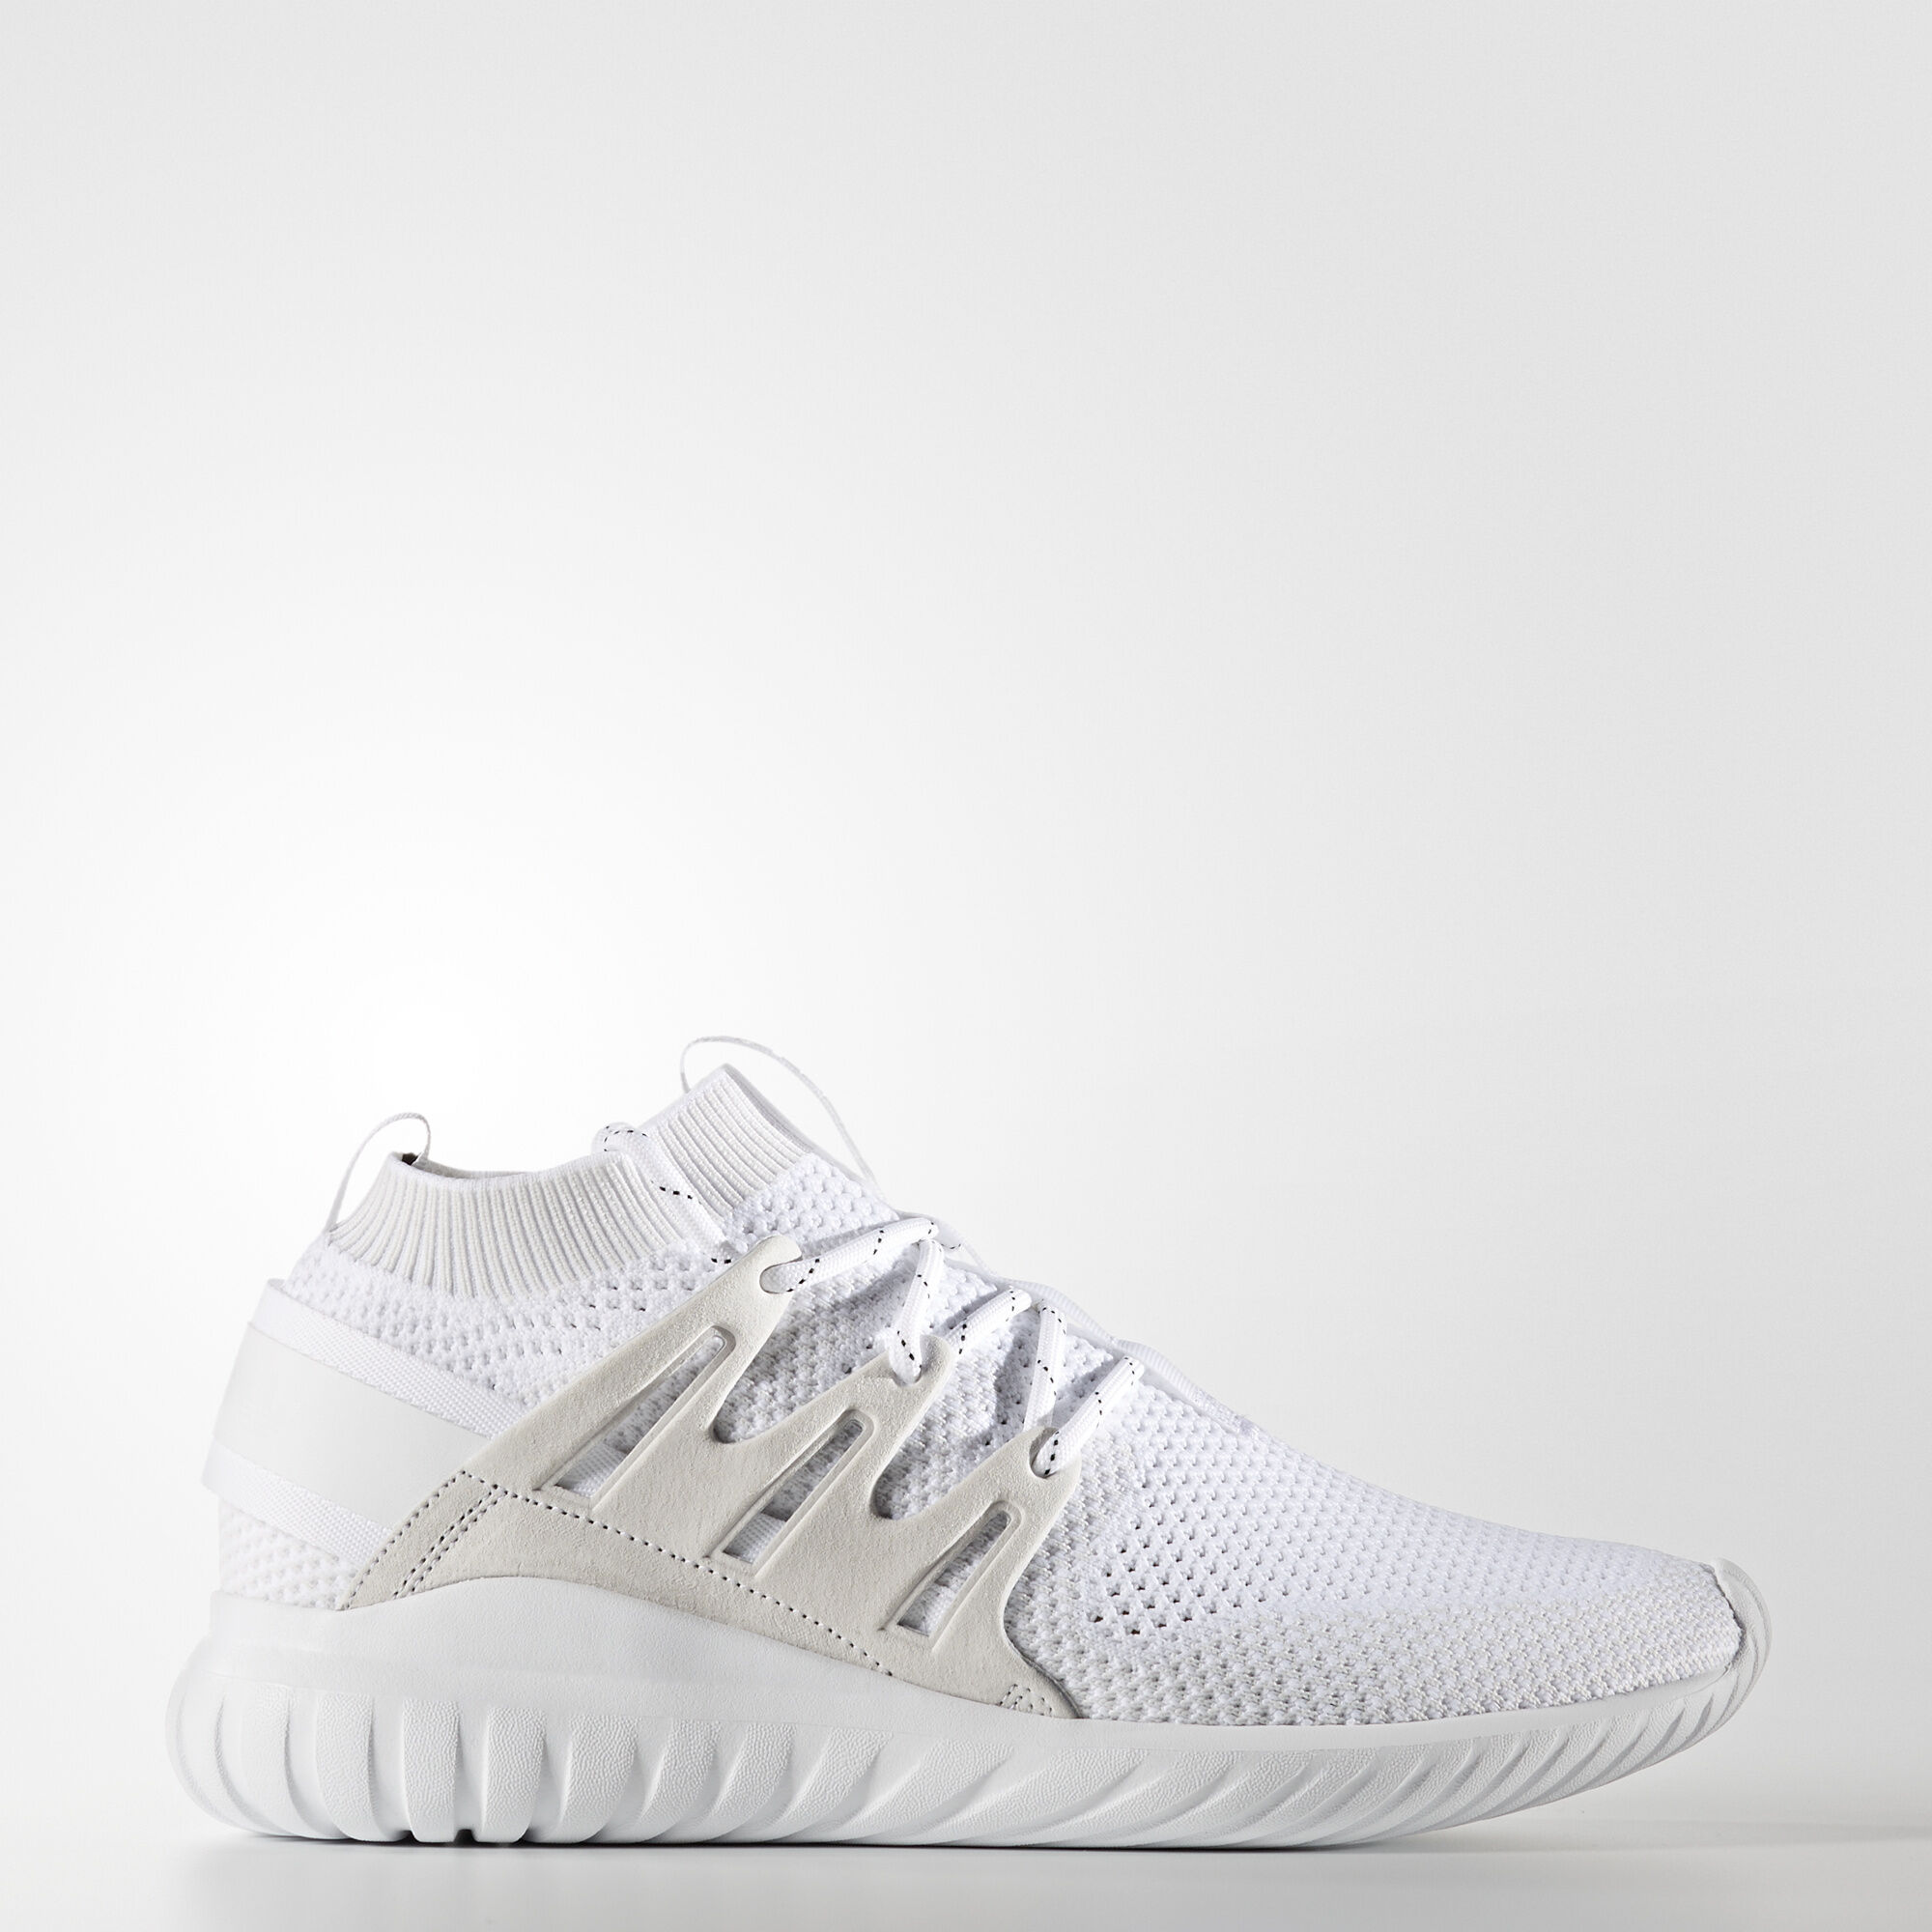 Adidas Originals Tubular Invader Strap Boys 'Toddler